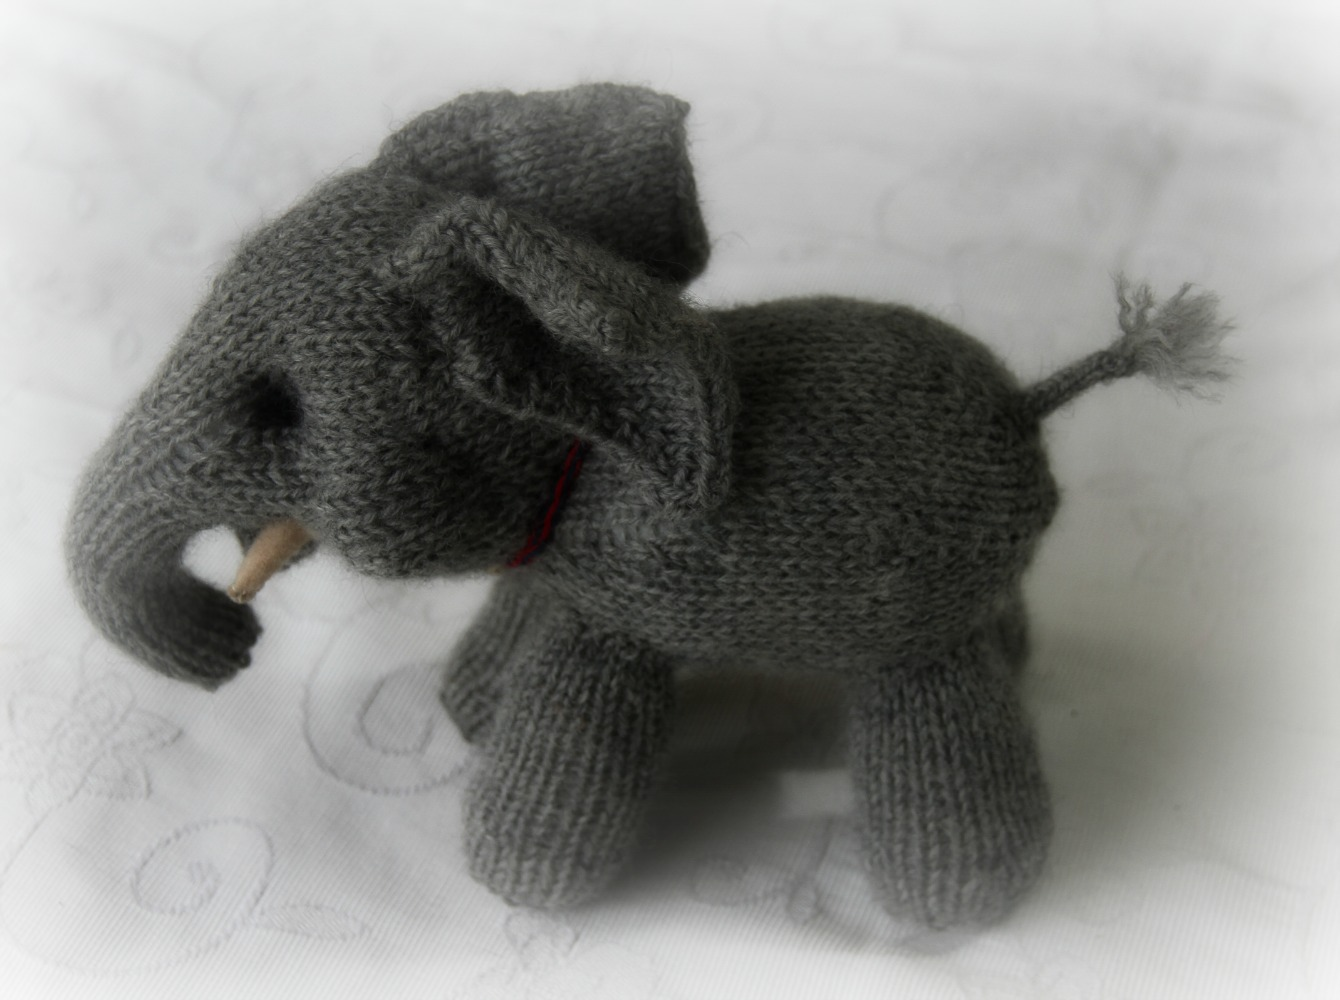 Easy Elephant Knitting Pattern : Susie McMahon Dolls: Recent Work and a Knitted Elephant Obssession